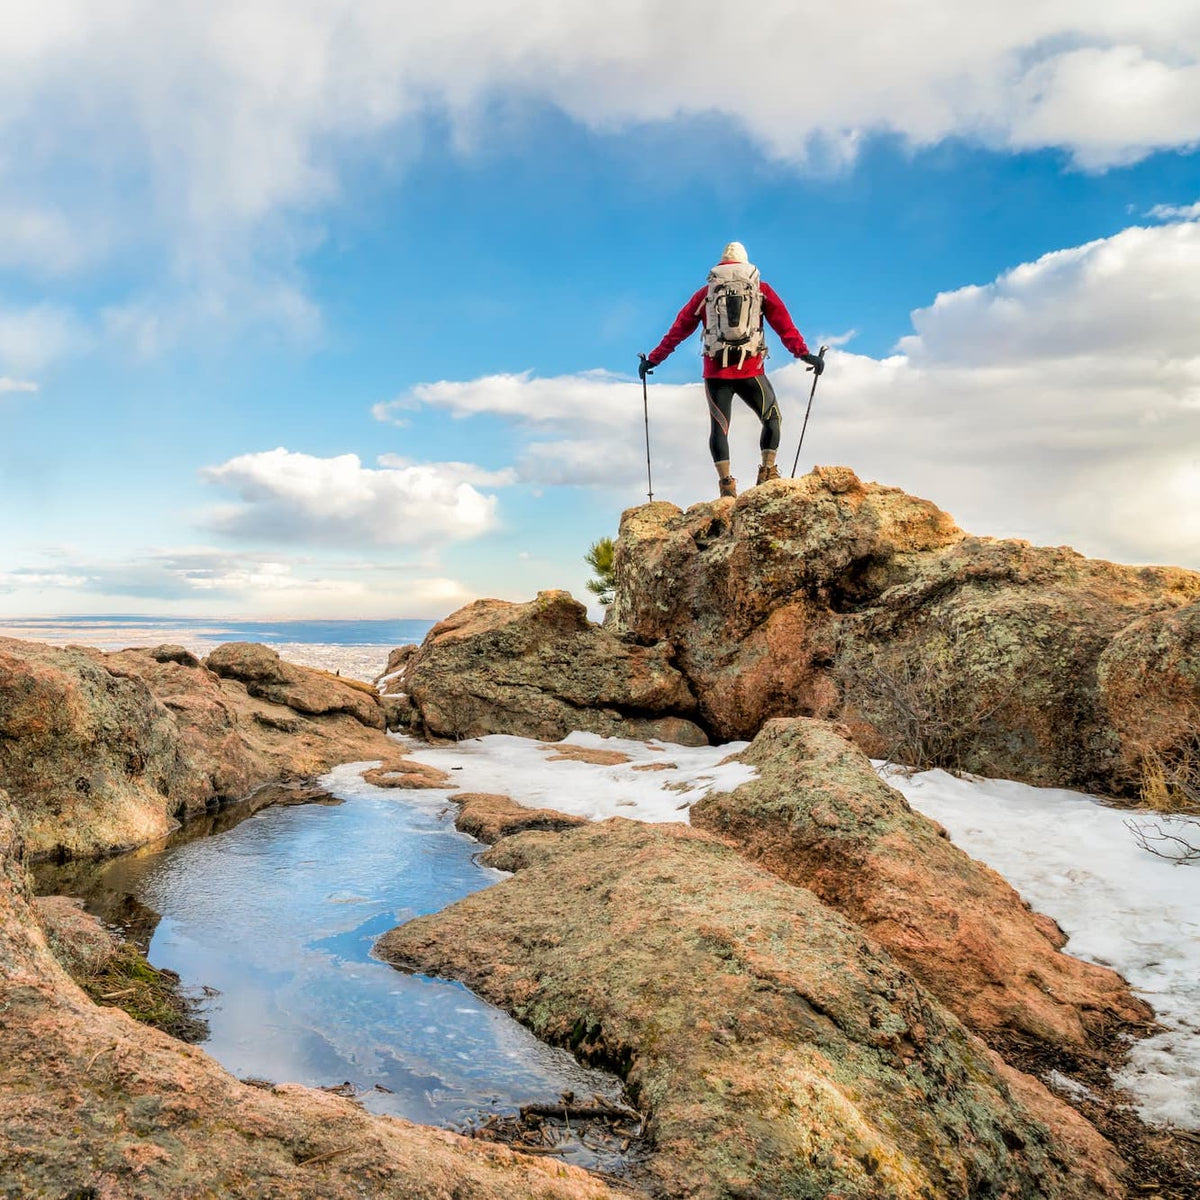 The Beginner's Guide to The Colorado Trail